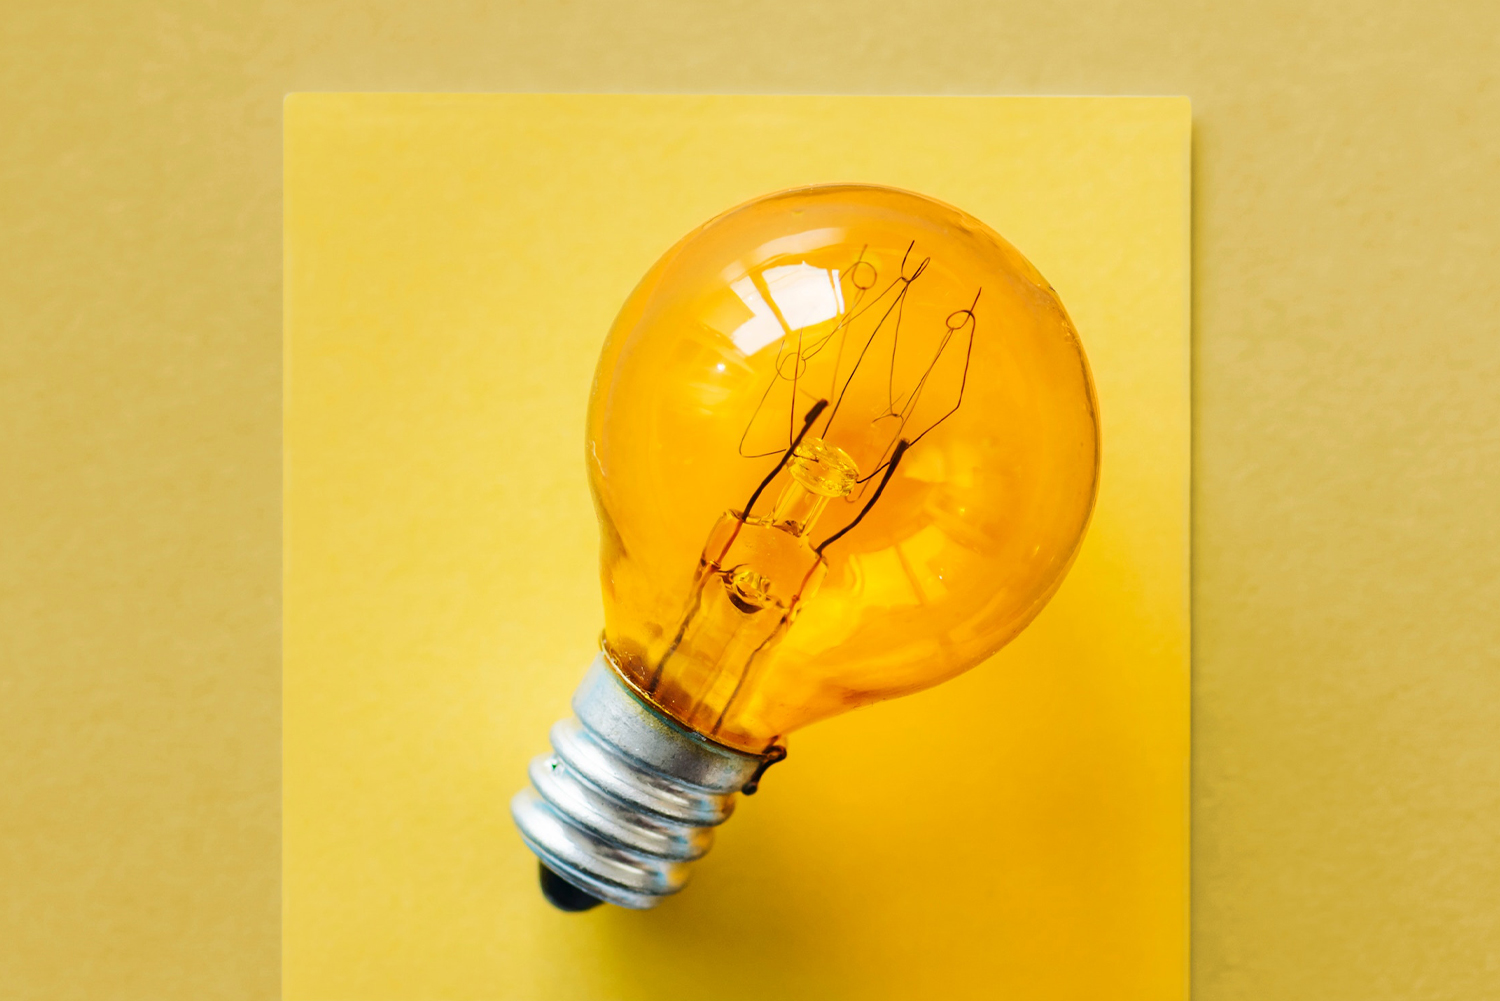 Creativity - Big, cost-effective ideas and a can-do attitude.Fresh, out of the box thinking.